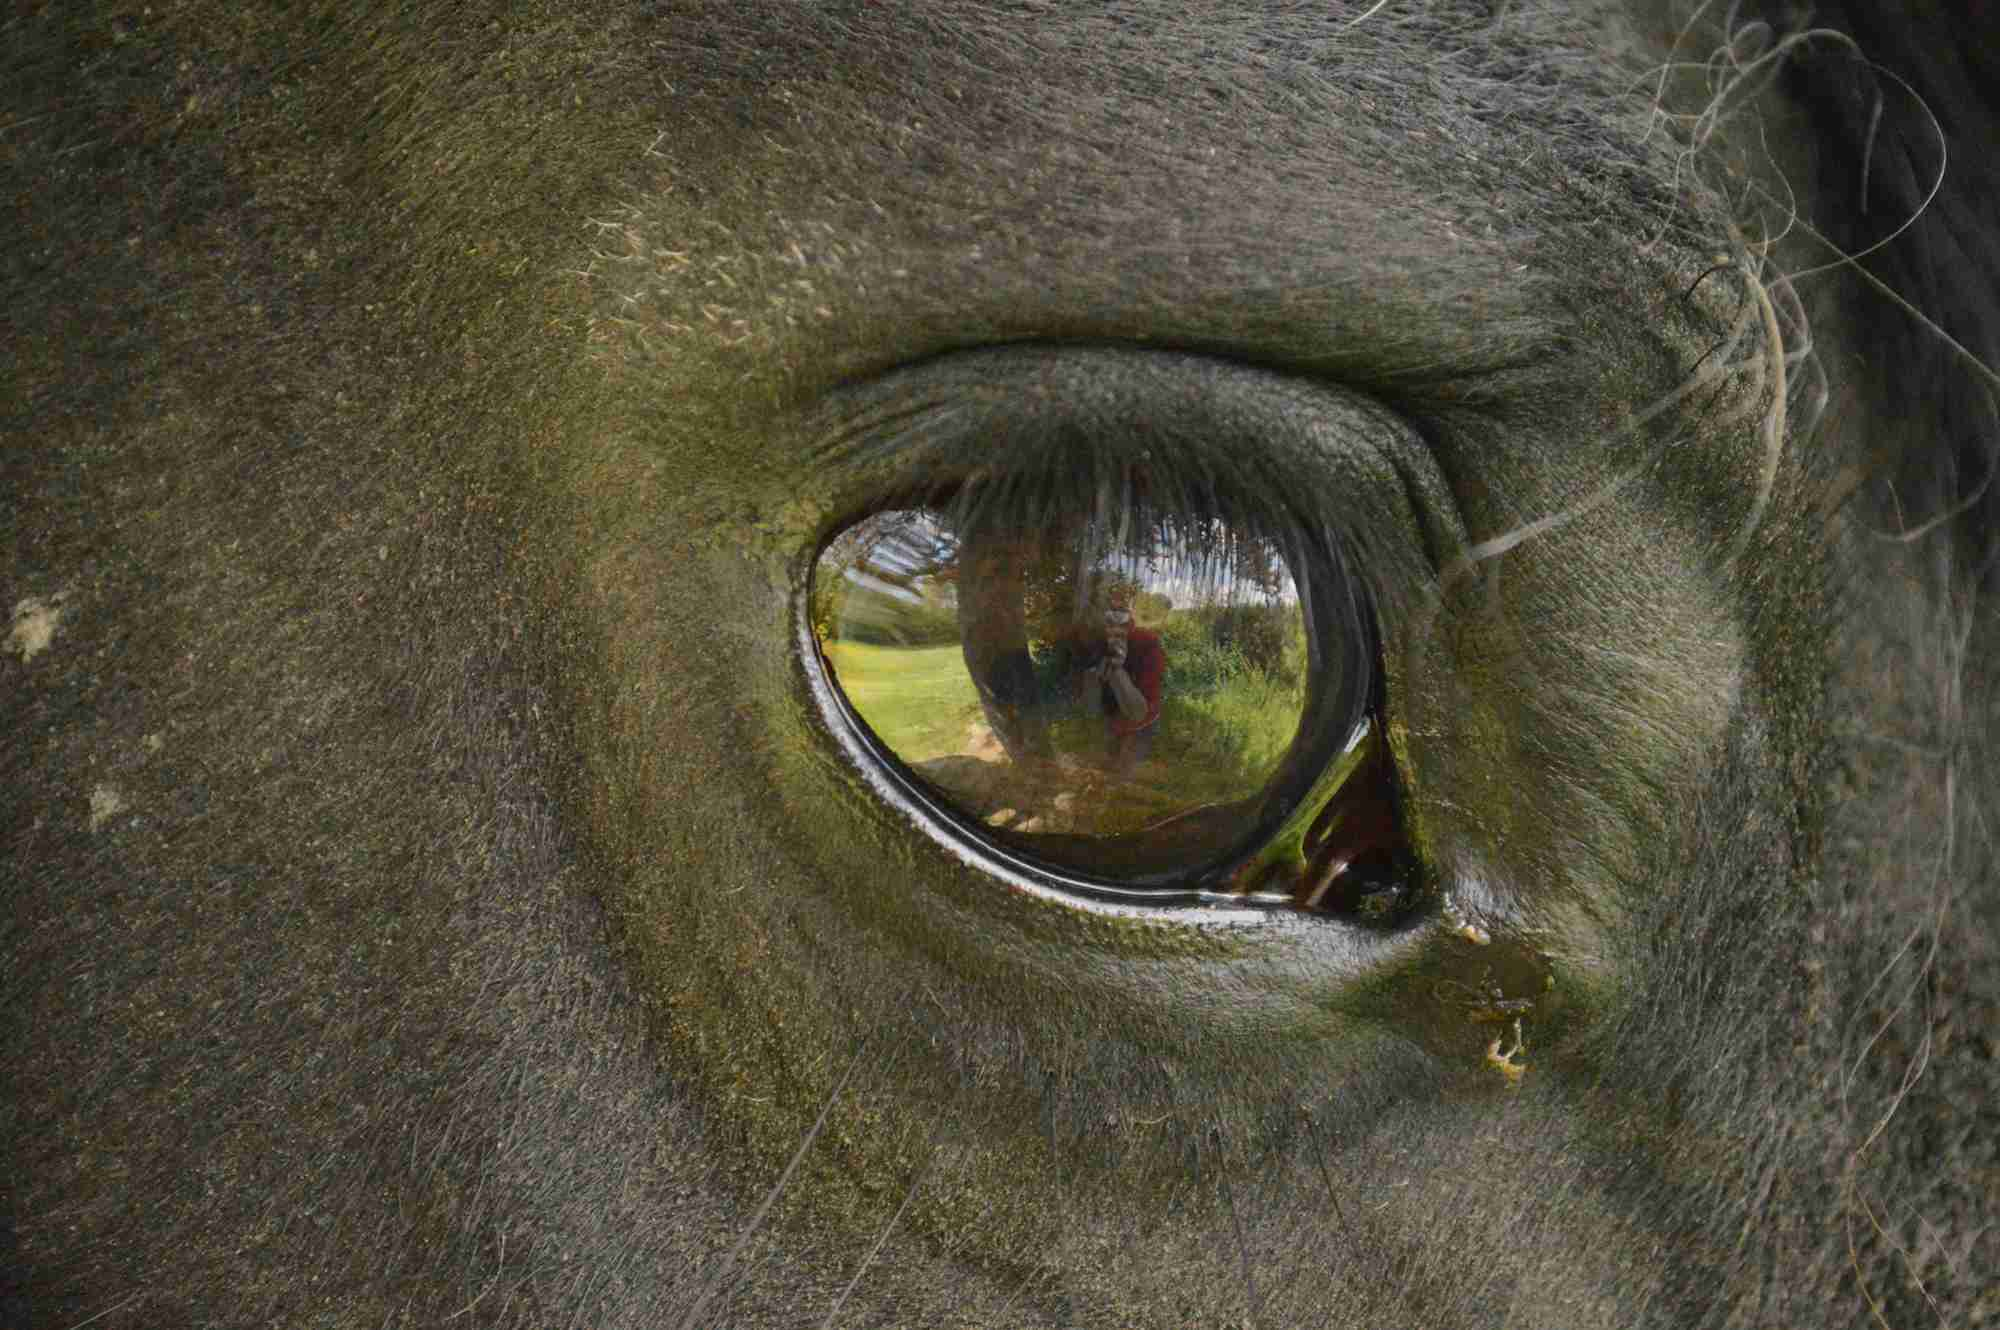 How to Treat Eye Infections and Injuries in Horses